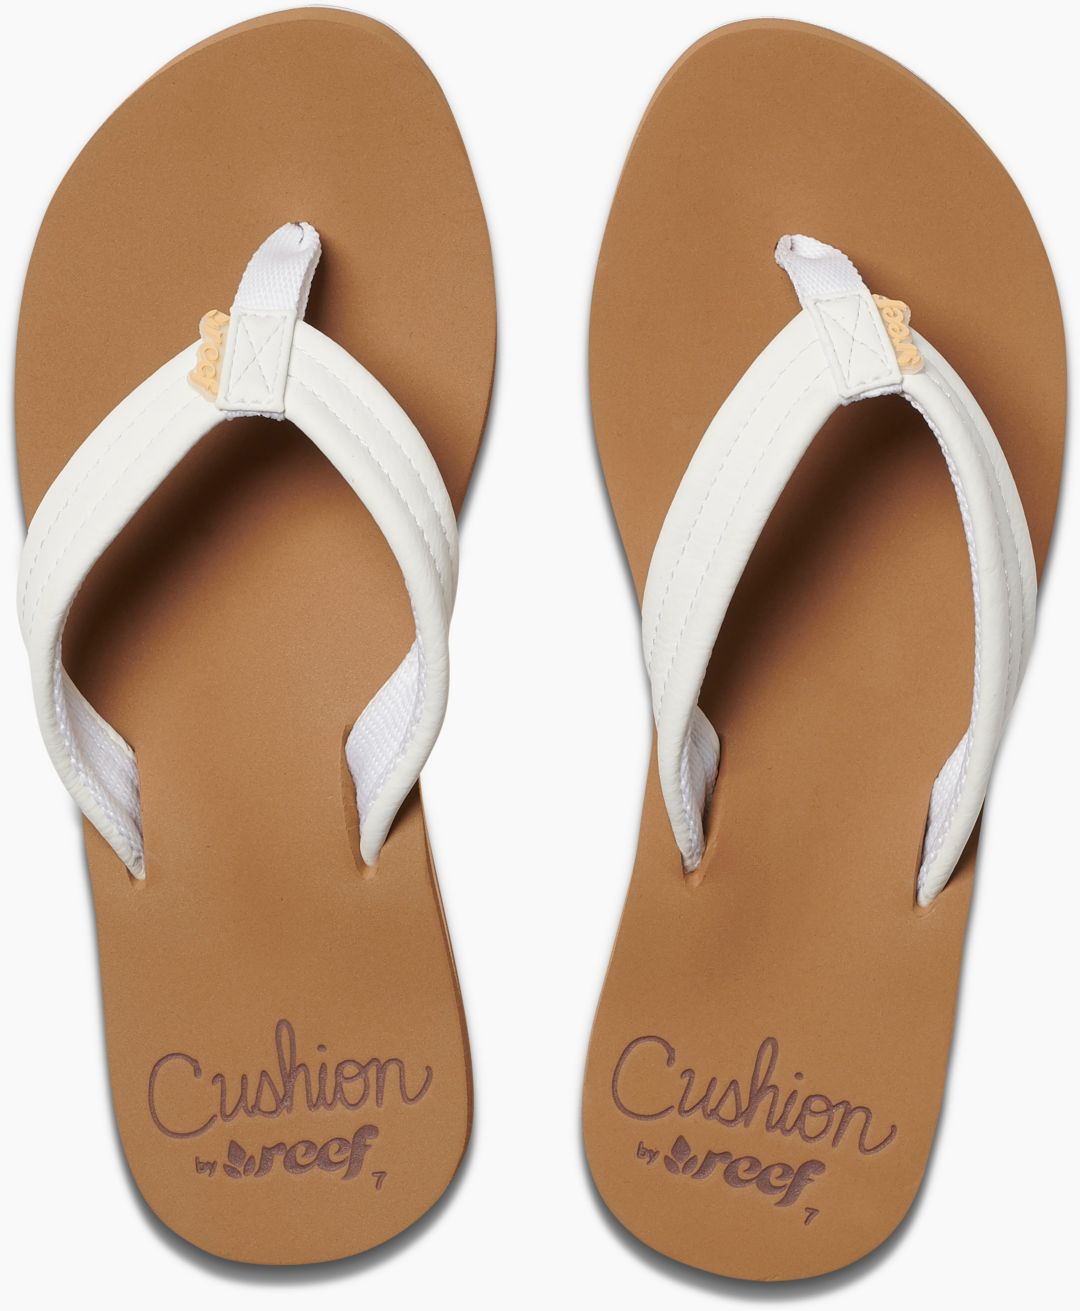 Reef Women S Cushion Breeze Flip Flops